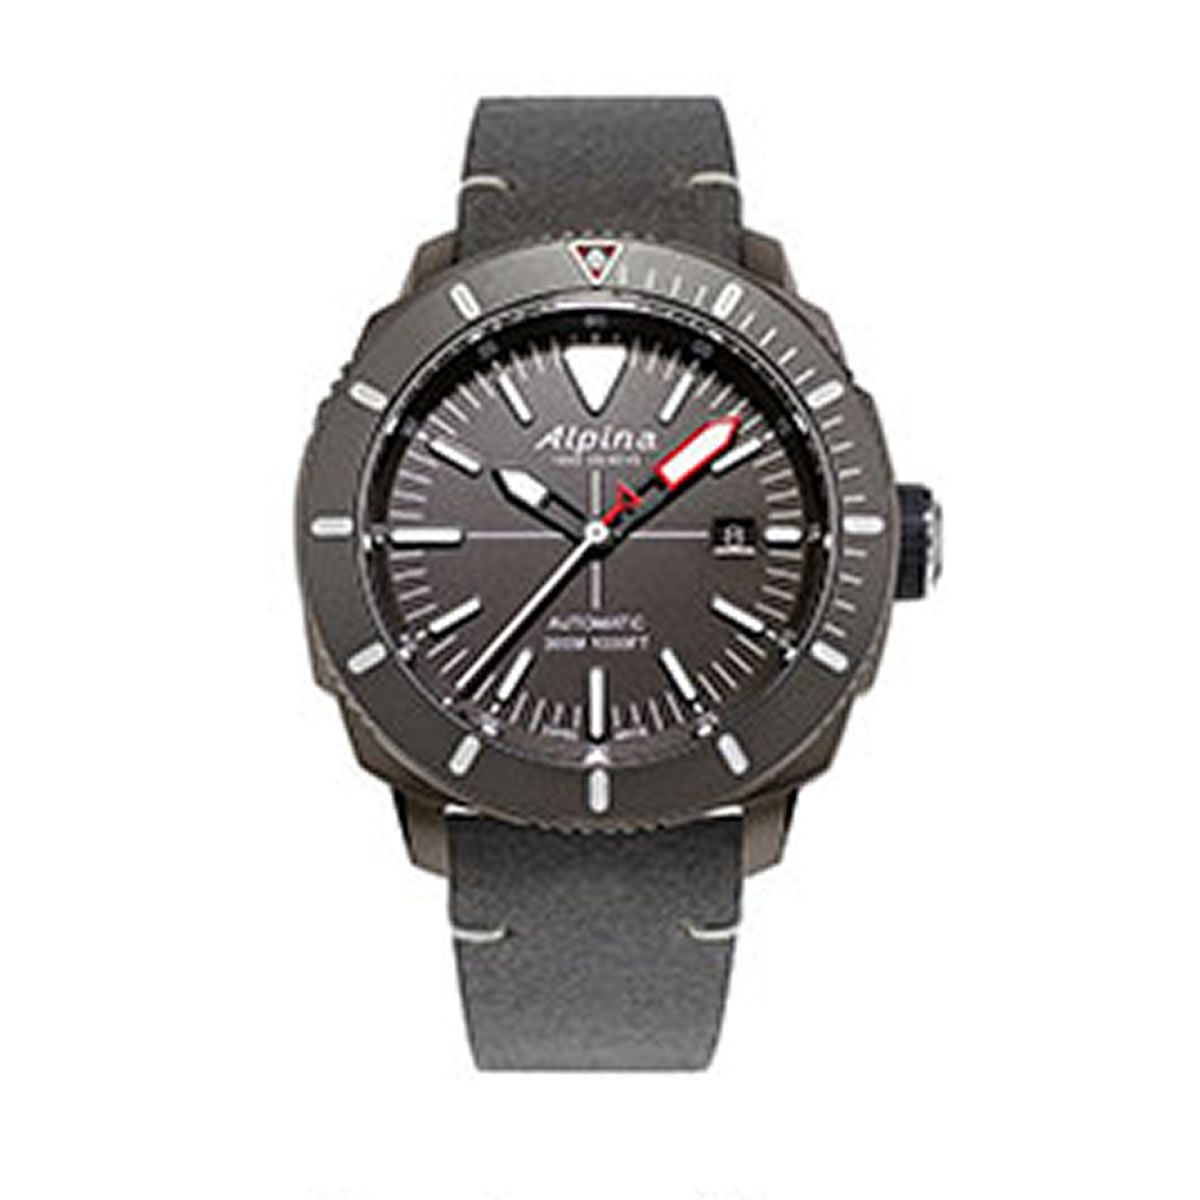 Seastrong Diver Automatic 300